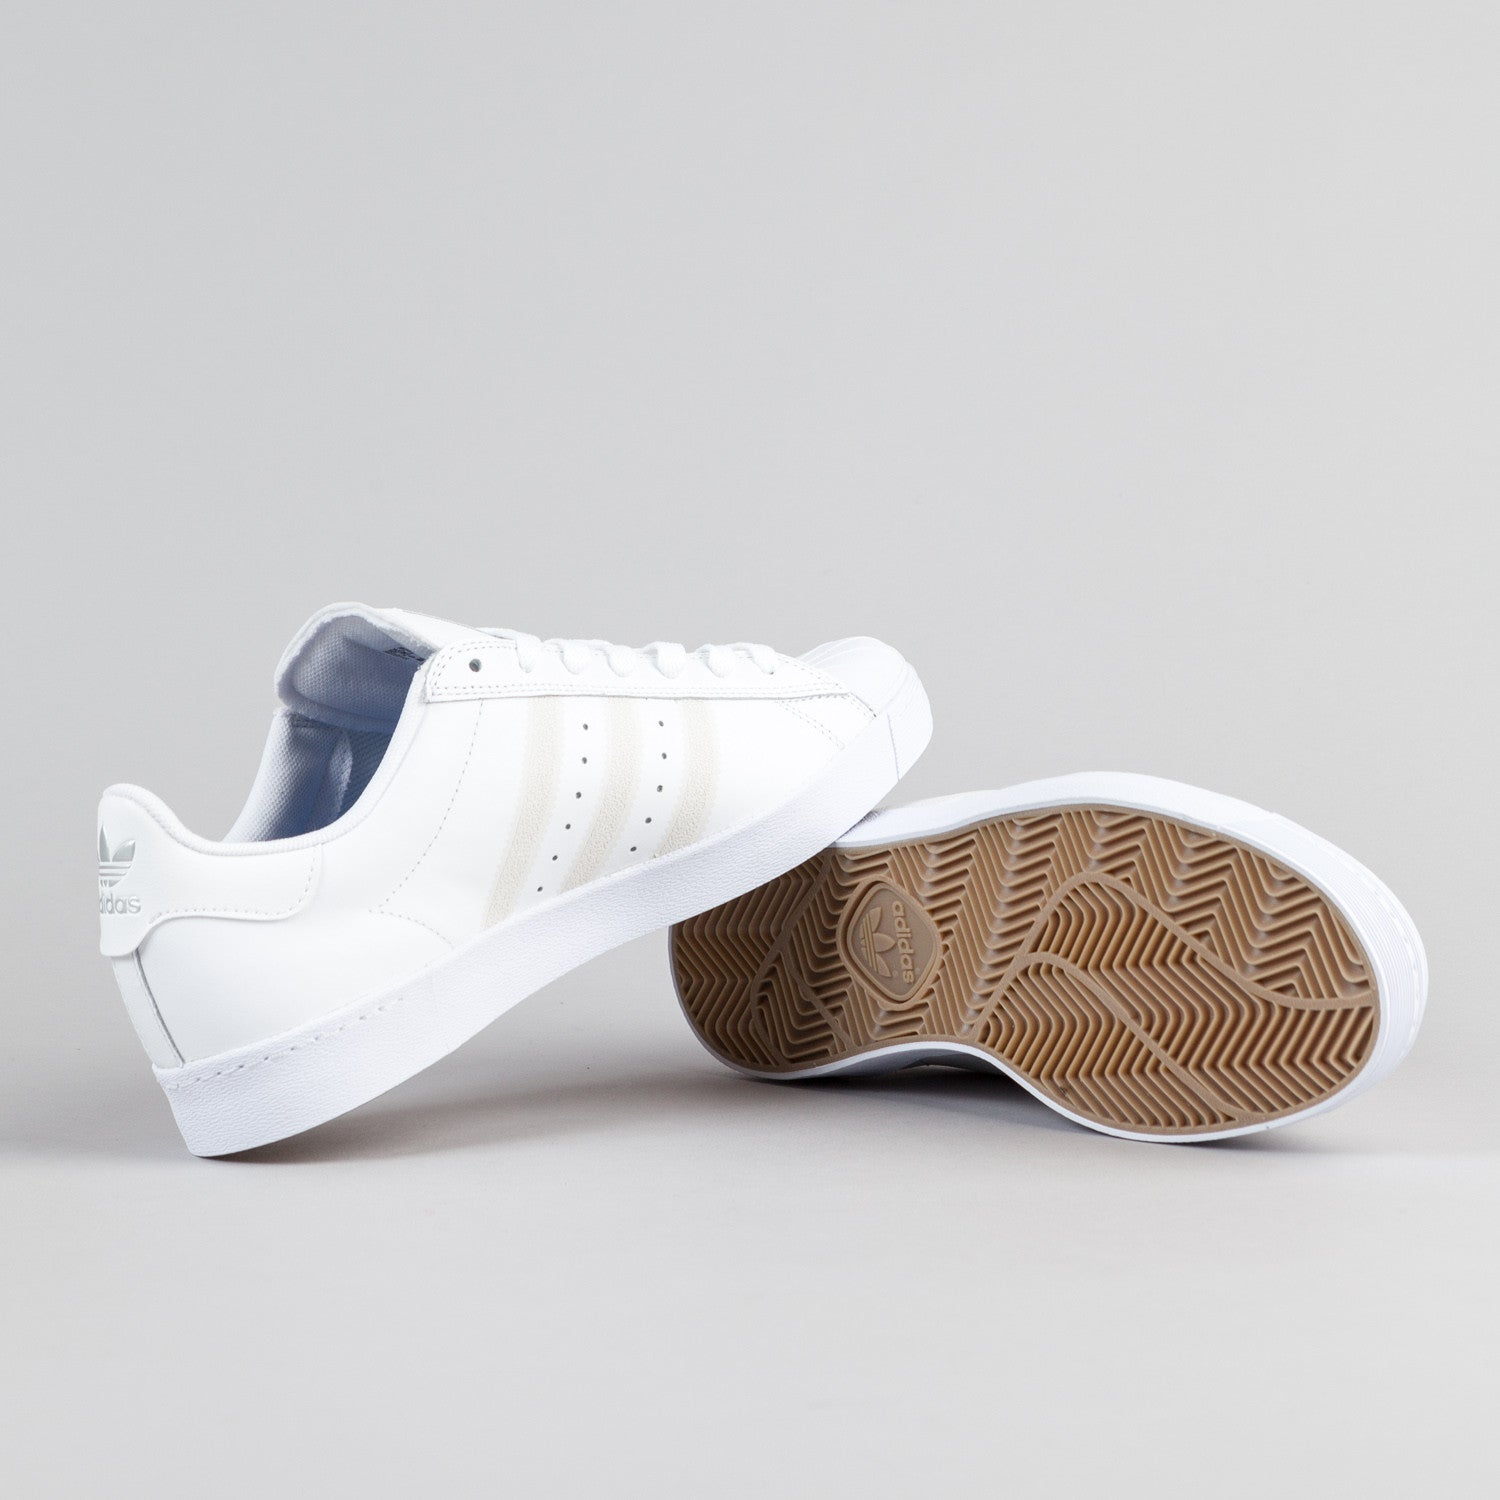 Adidas Superstar Vulc ADV Shoes - FTW White / FTW White / Silver Metallic